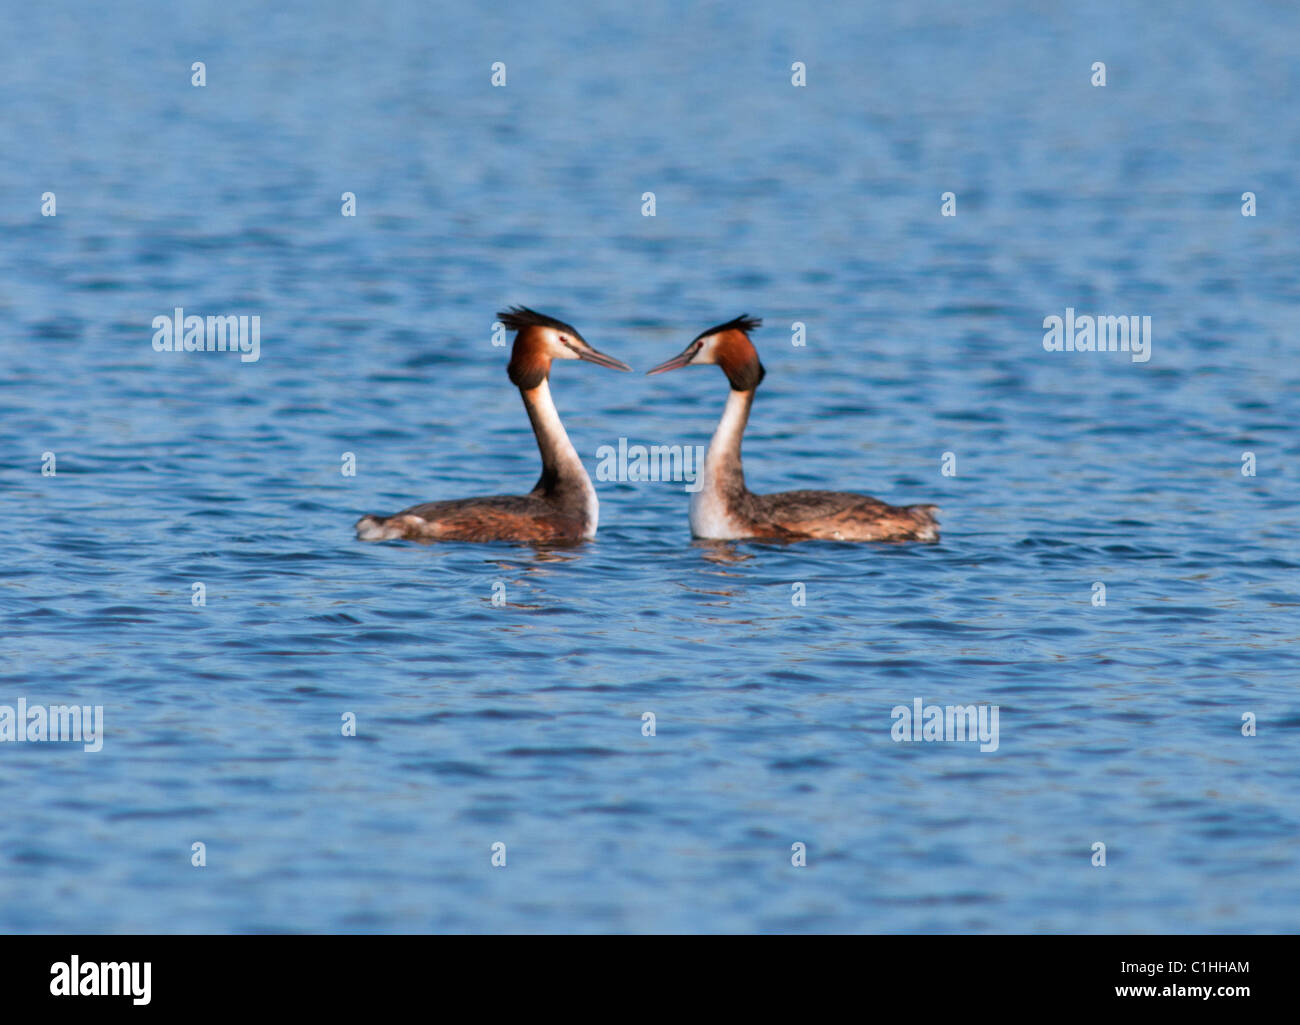 Great Crested Grebes (Podiceps cristatus) in courtship display - Stock Image